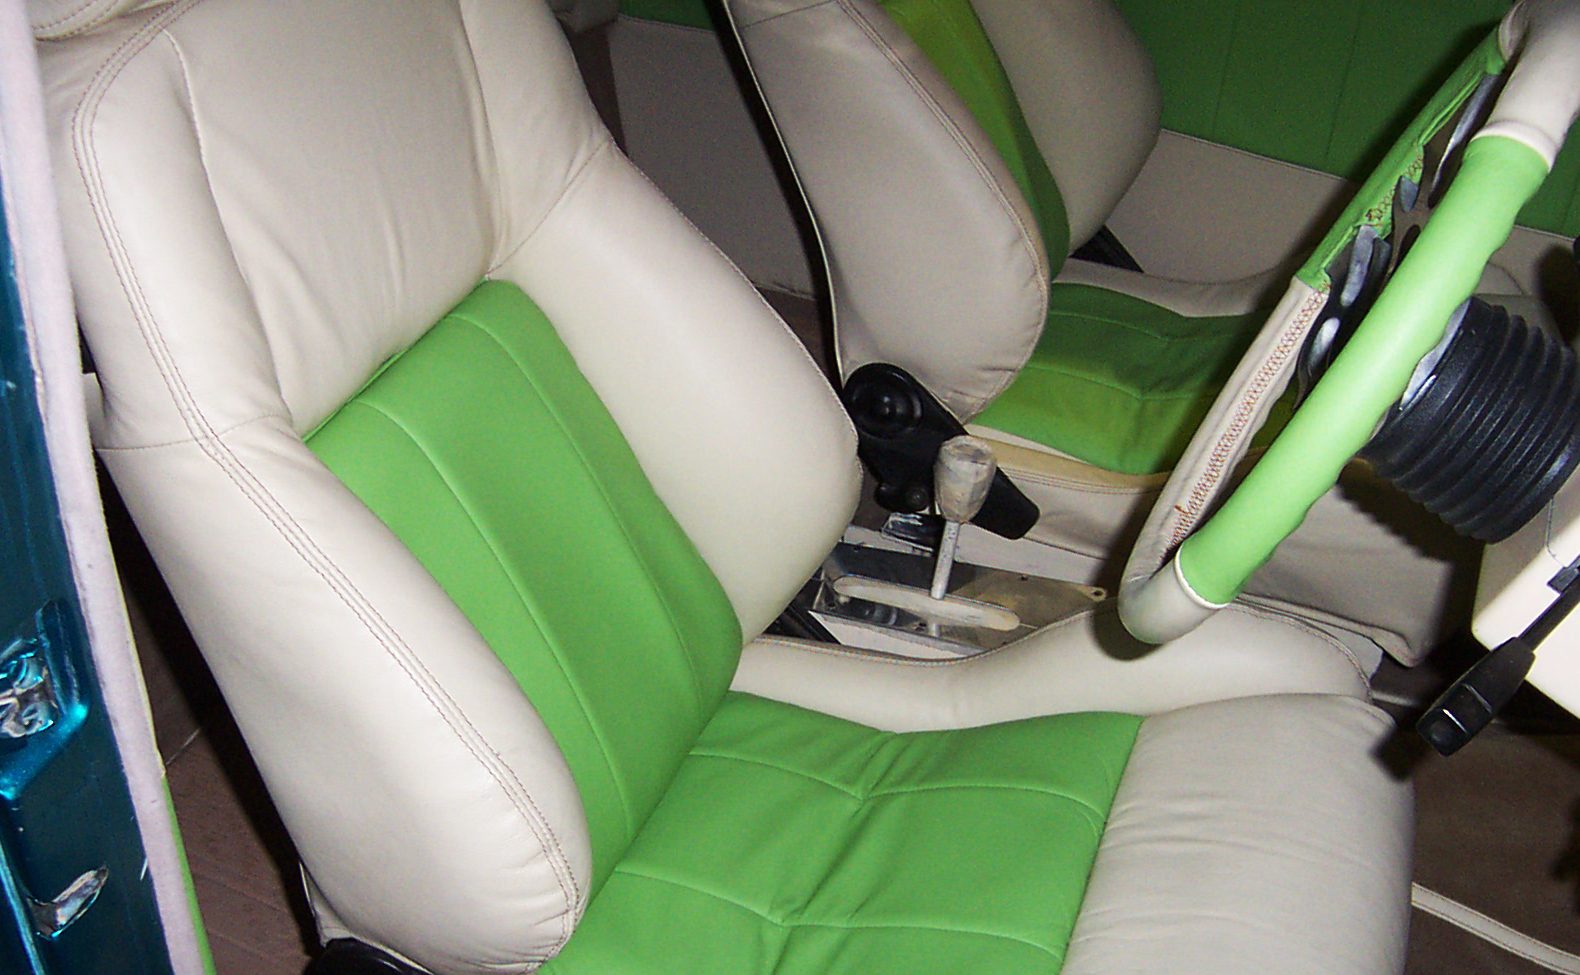 Cream+and+green+interior%2C+panelling%2C+seats+and+steering+wheel